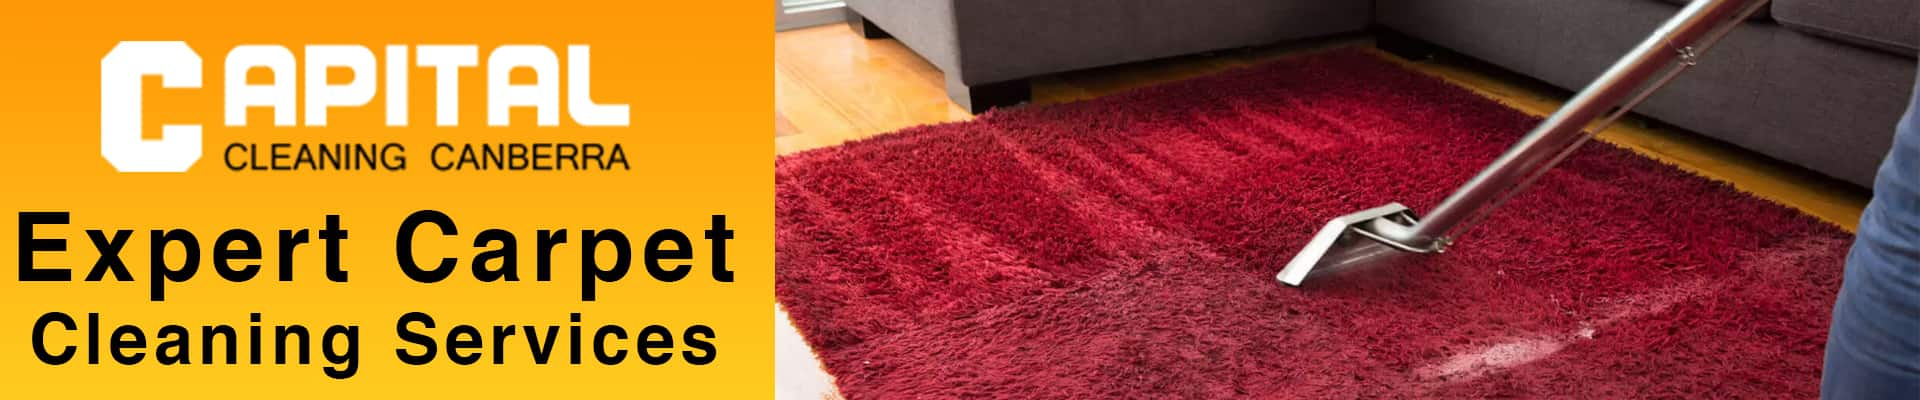 Expert Carpet Cleaning Services Bonner